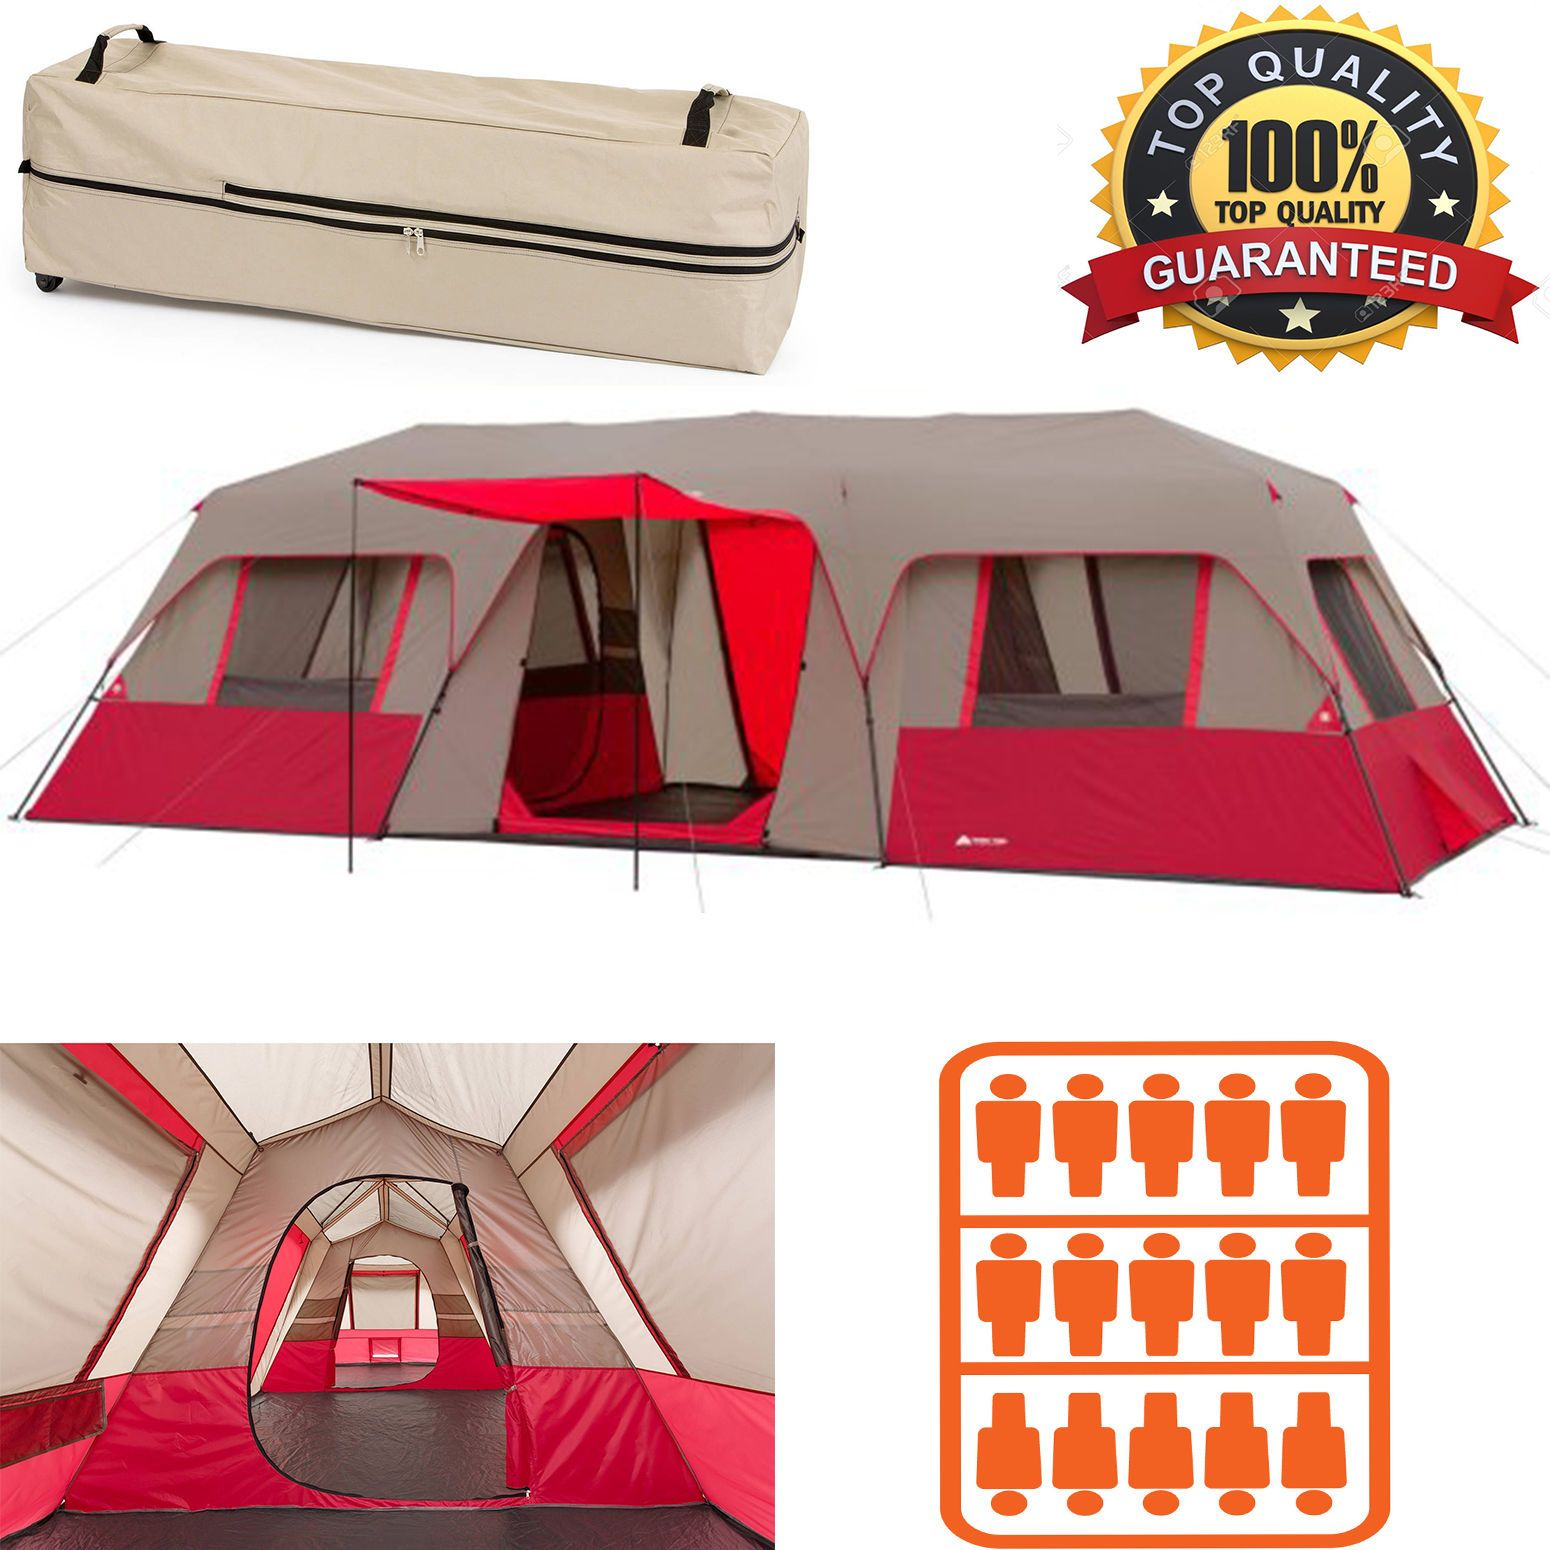 Ozark Trail 15 Person Instant Cabin Large Tent C&ing Split Plan Family 3-Room  sc 1 st  Pinterest & Ozark Trail 15 Person Instant Cabin Large Tent Camping Split Plan ...